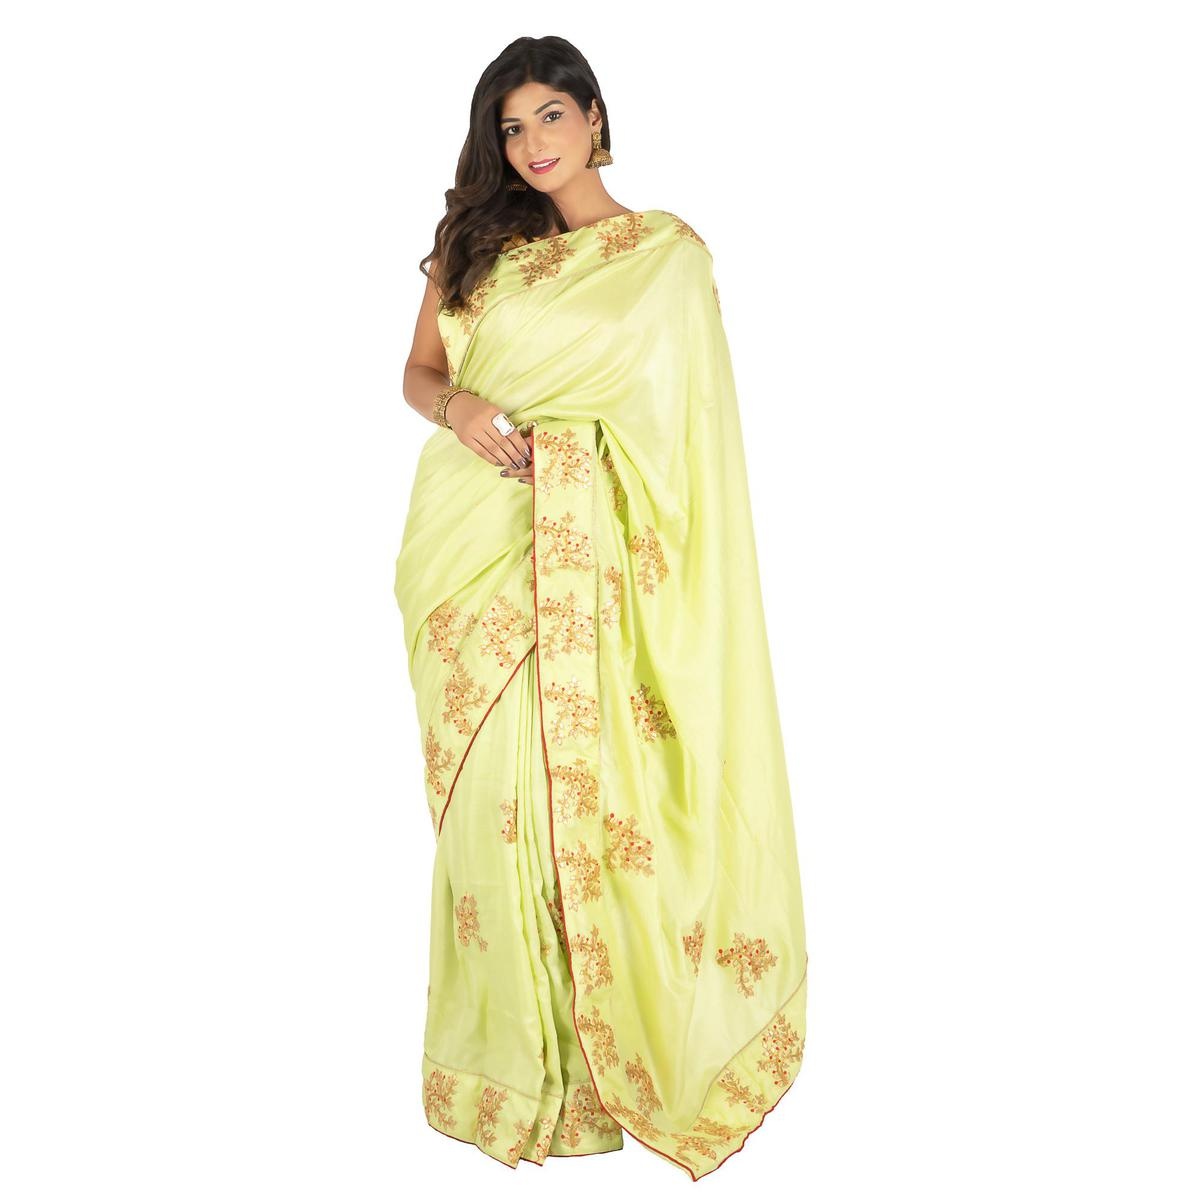 Pooja Fashion - Green Colored Party Wear Embroidered Brasso Silk Saree